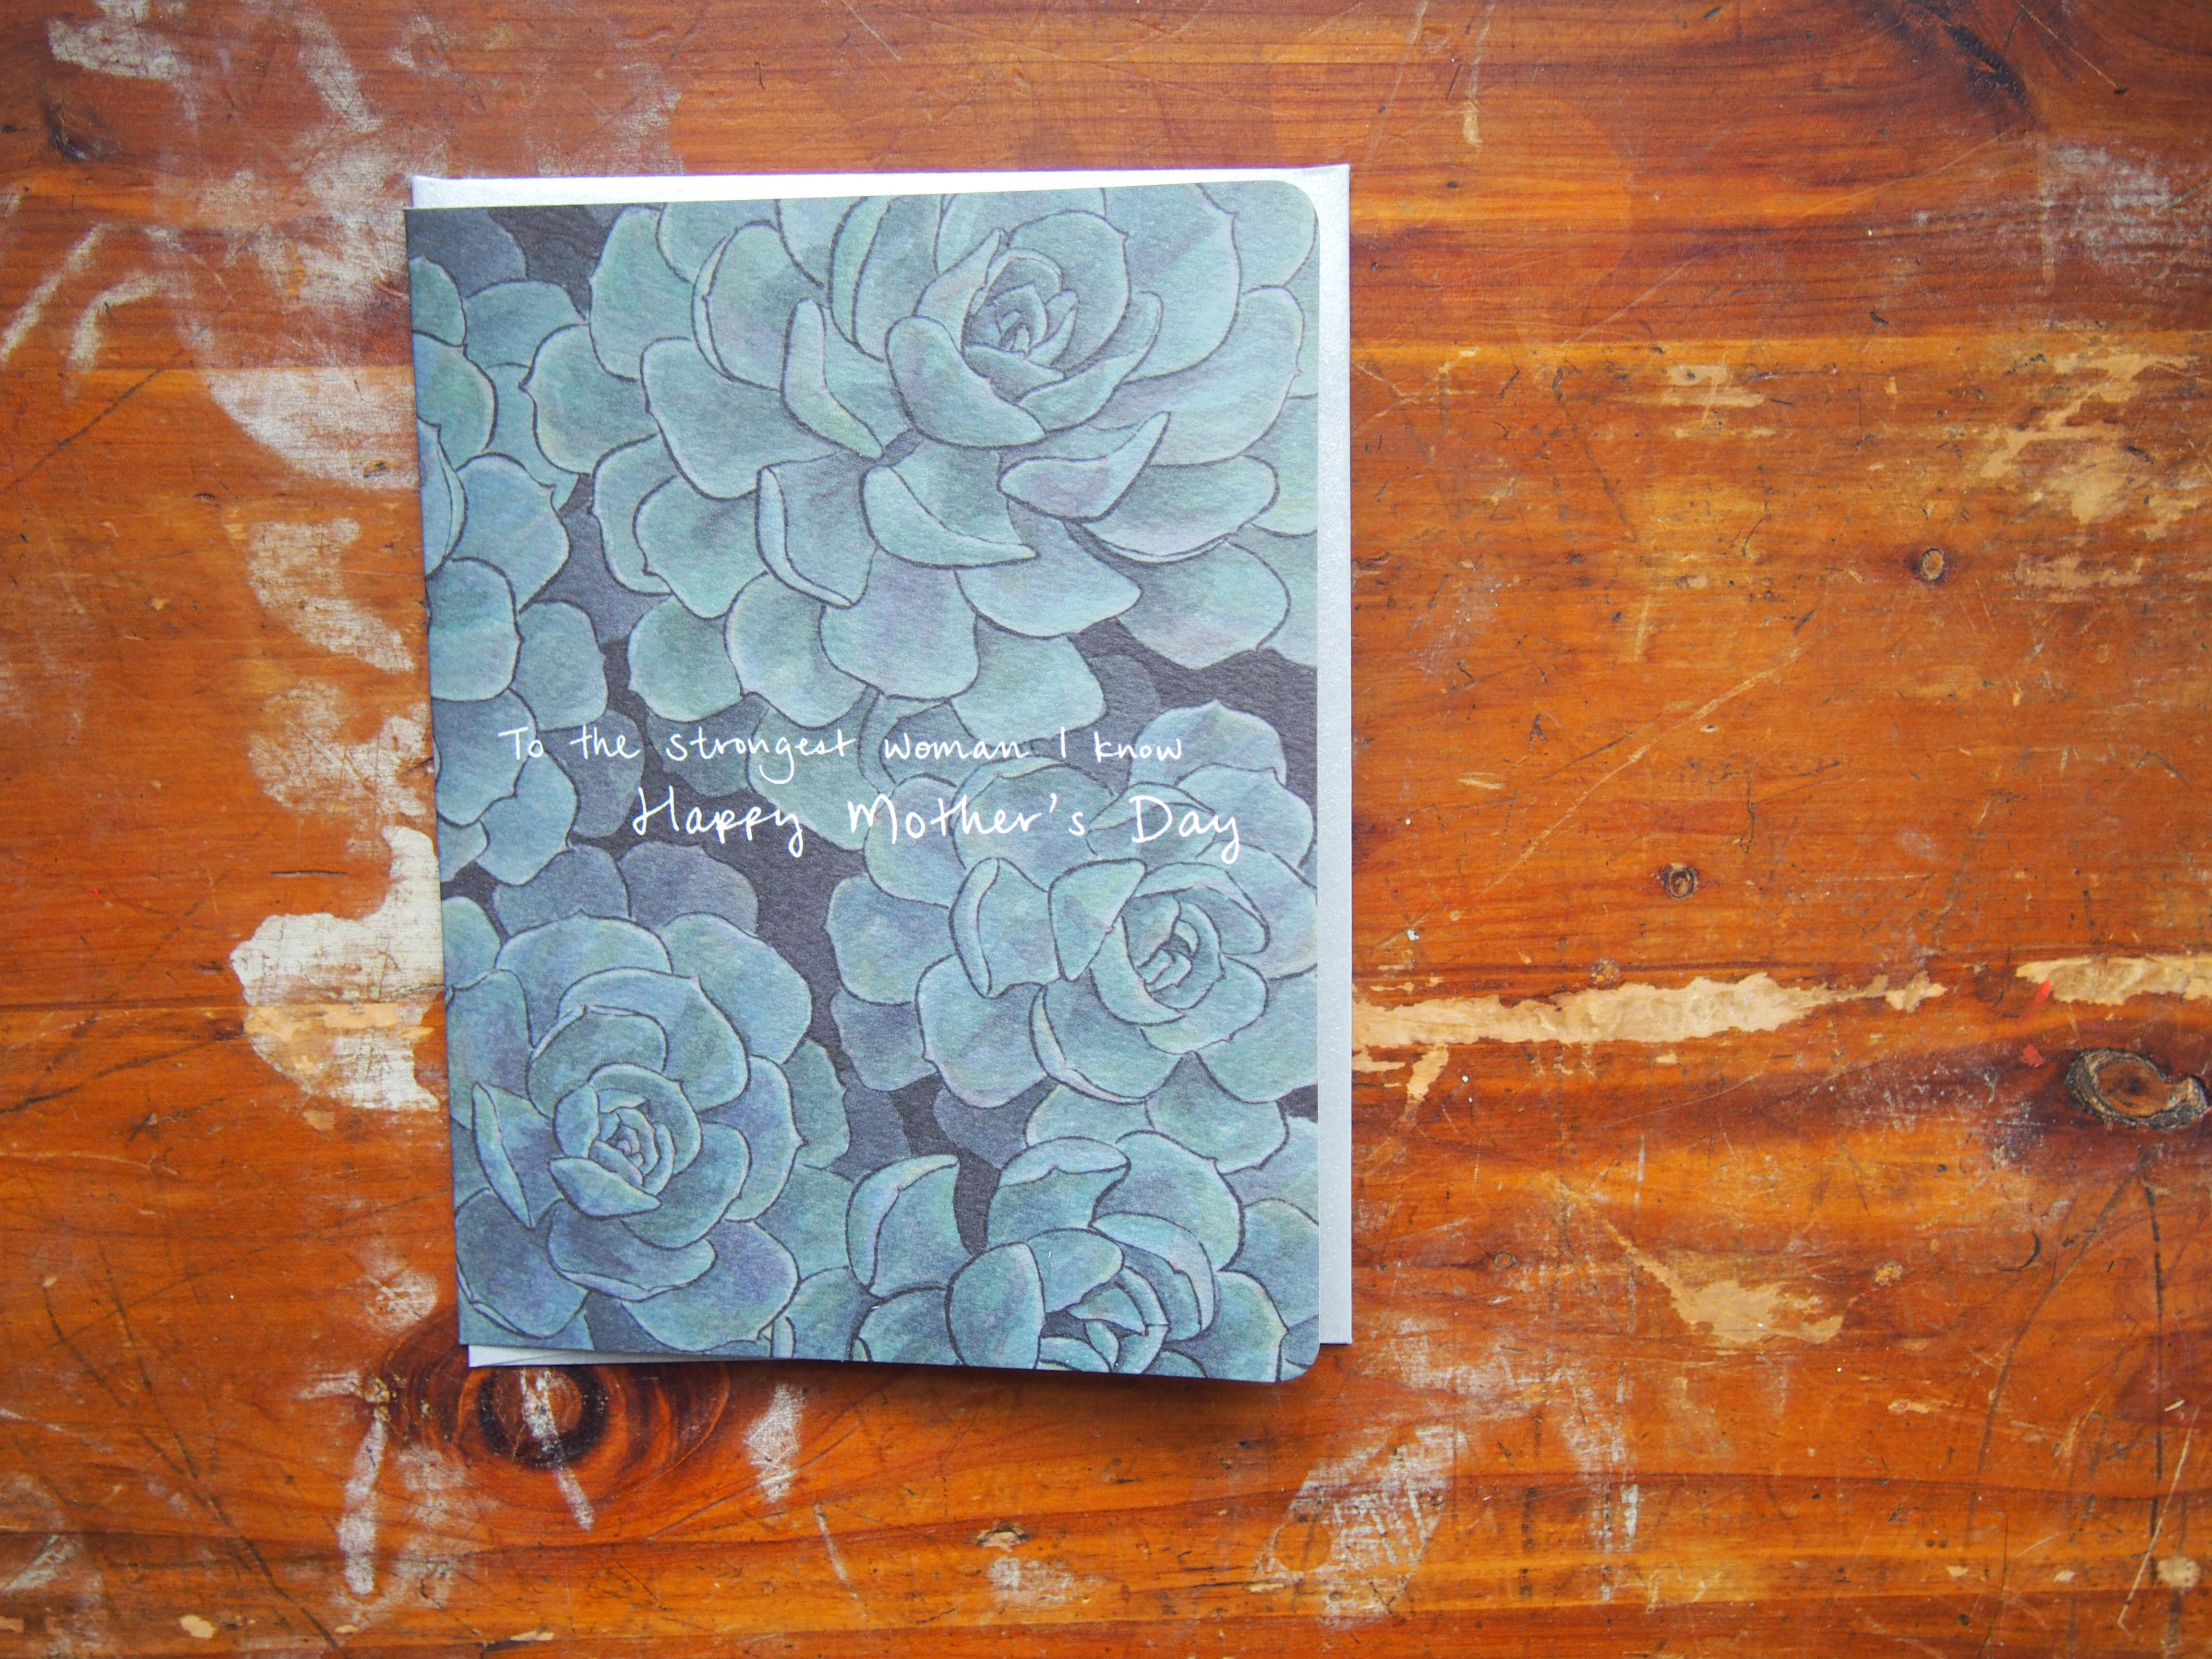 Mother's Day Cards & Gift Ideas from Wonder Pens